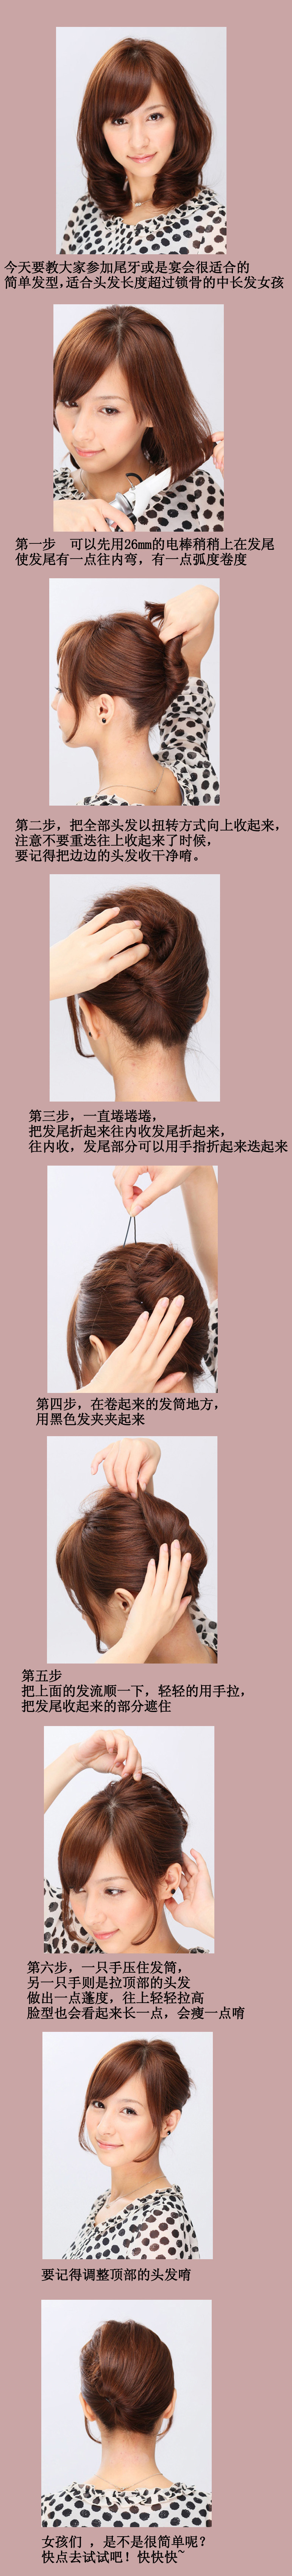 Beehive hair bun, I think I'll try this one based on the photos